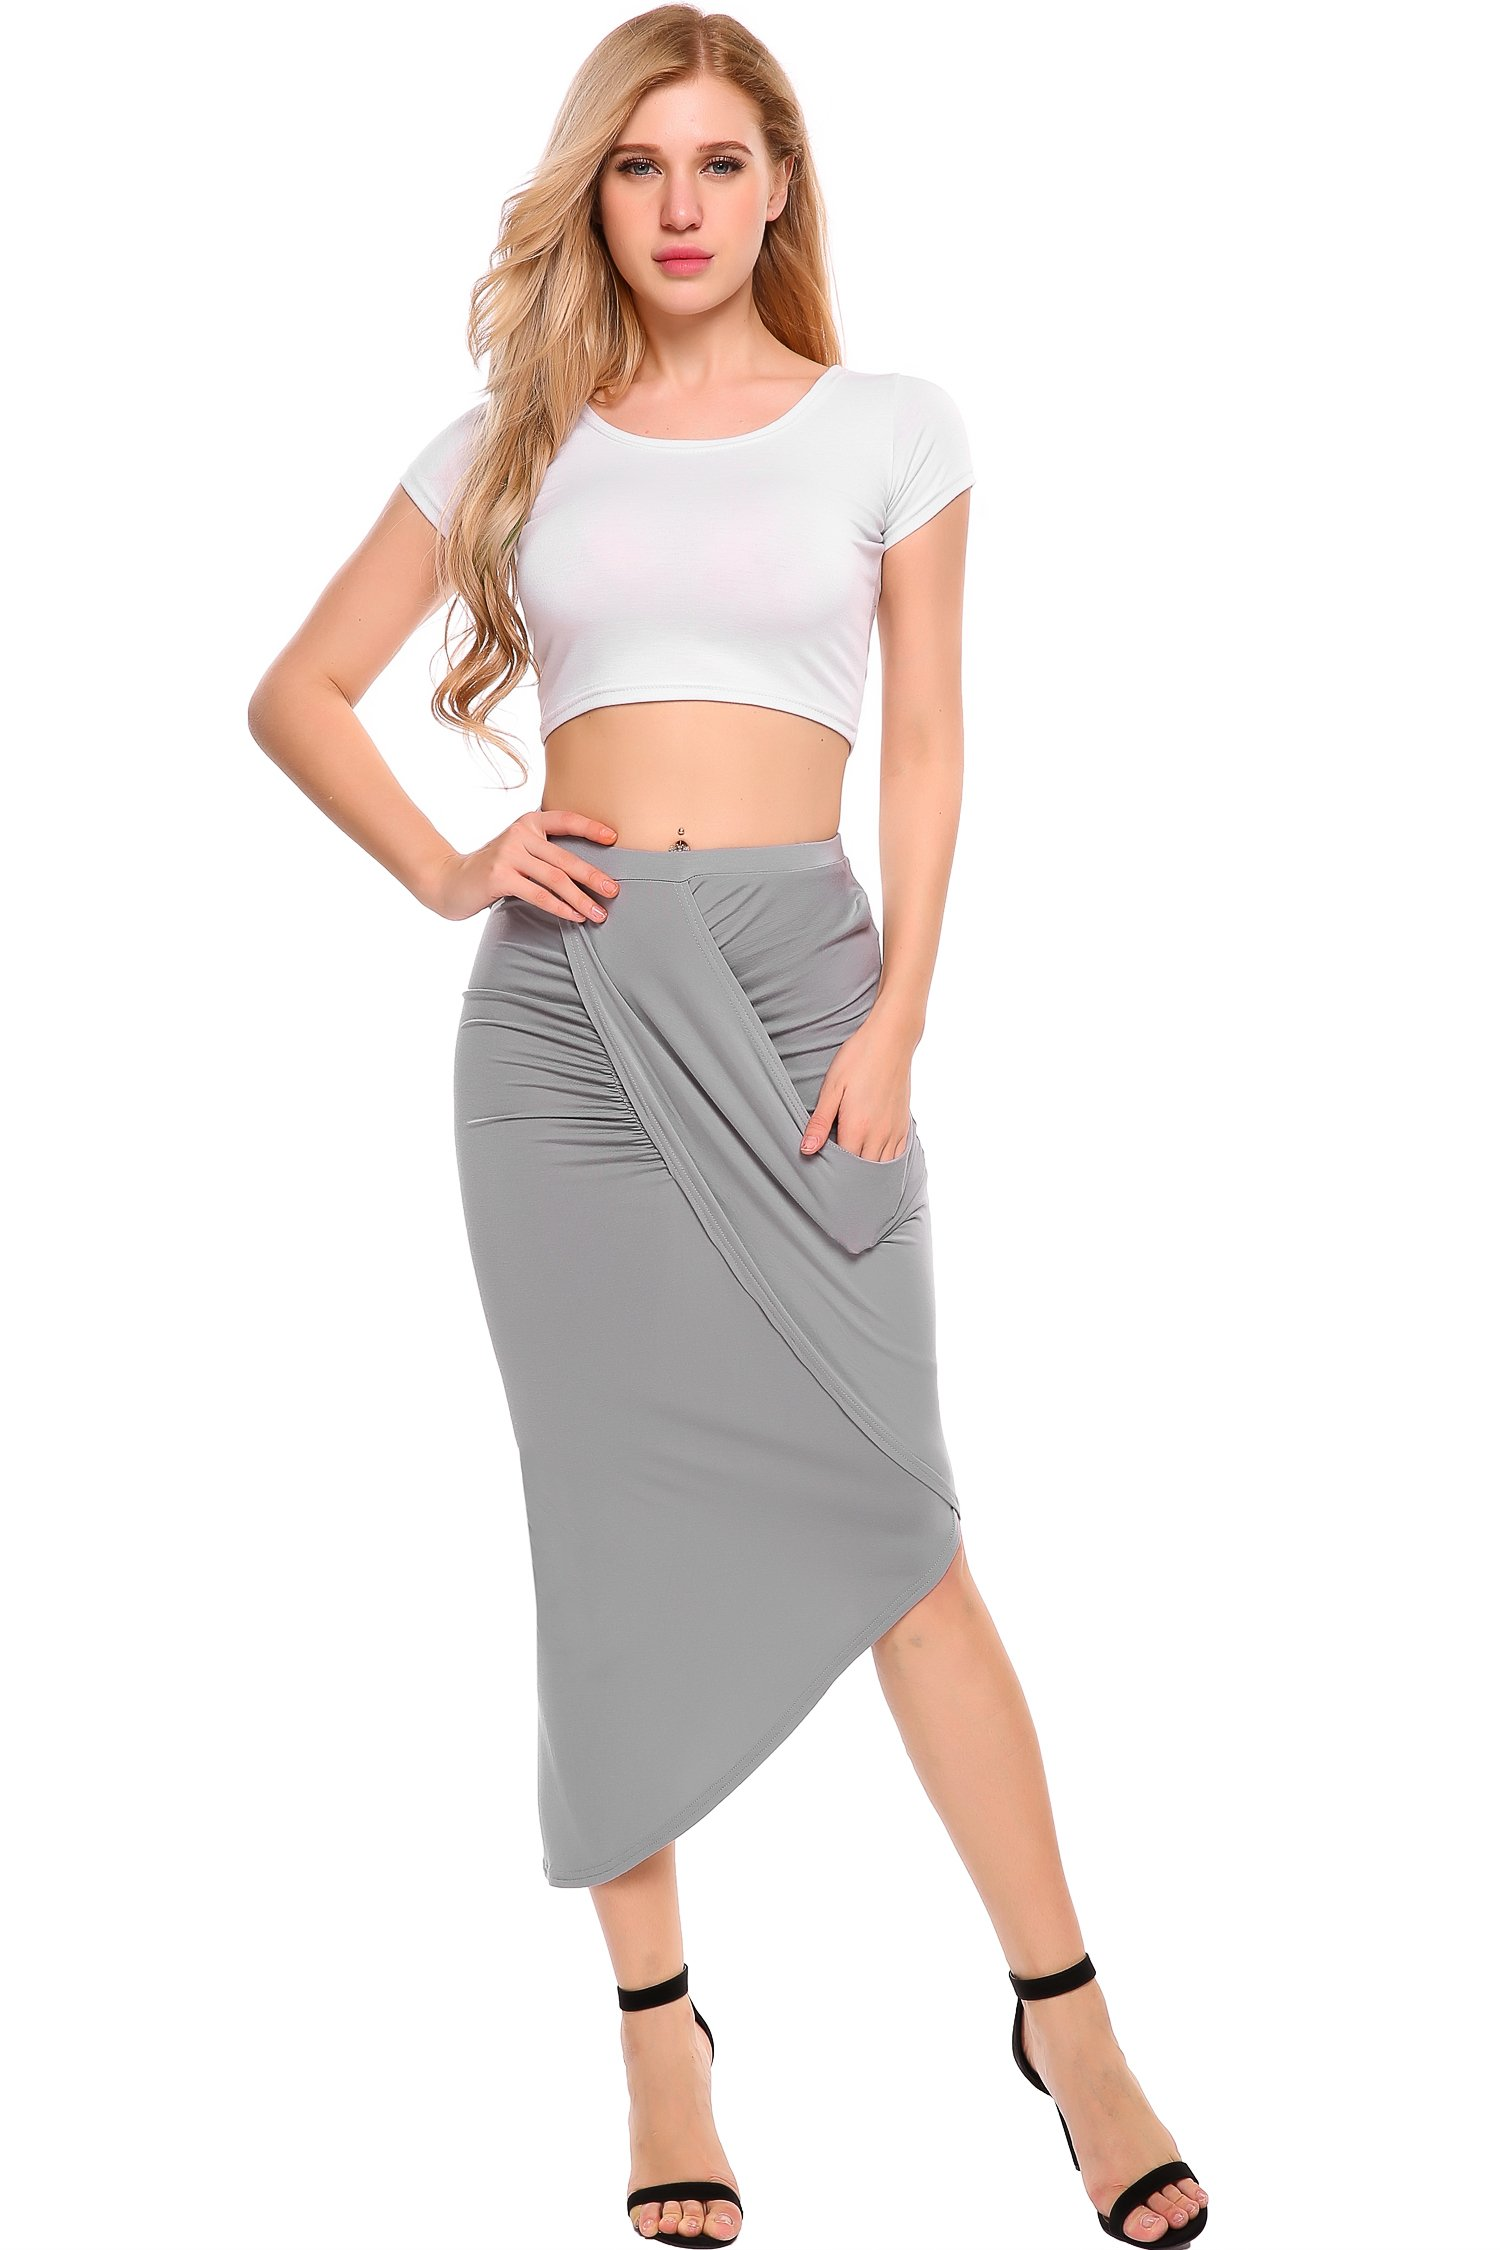 zeagoo Summer Breathable Drawstring Waist Cotton Solid Color Long Pencil Skirts For Women,Grey,Large